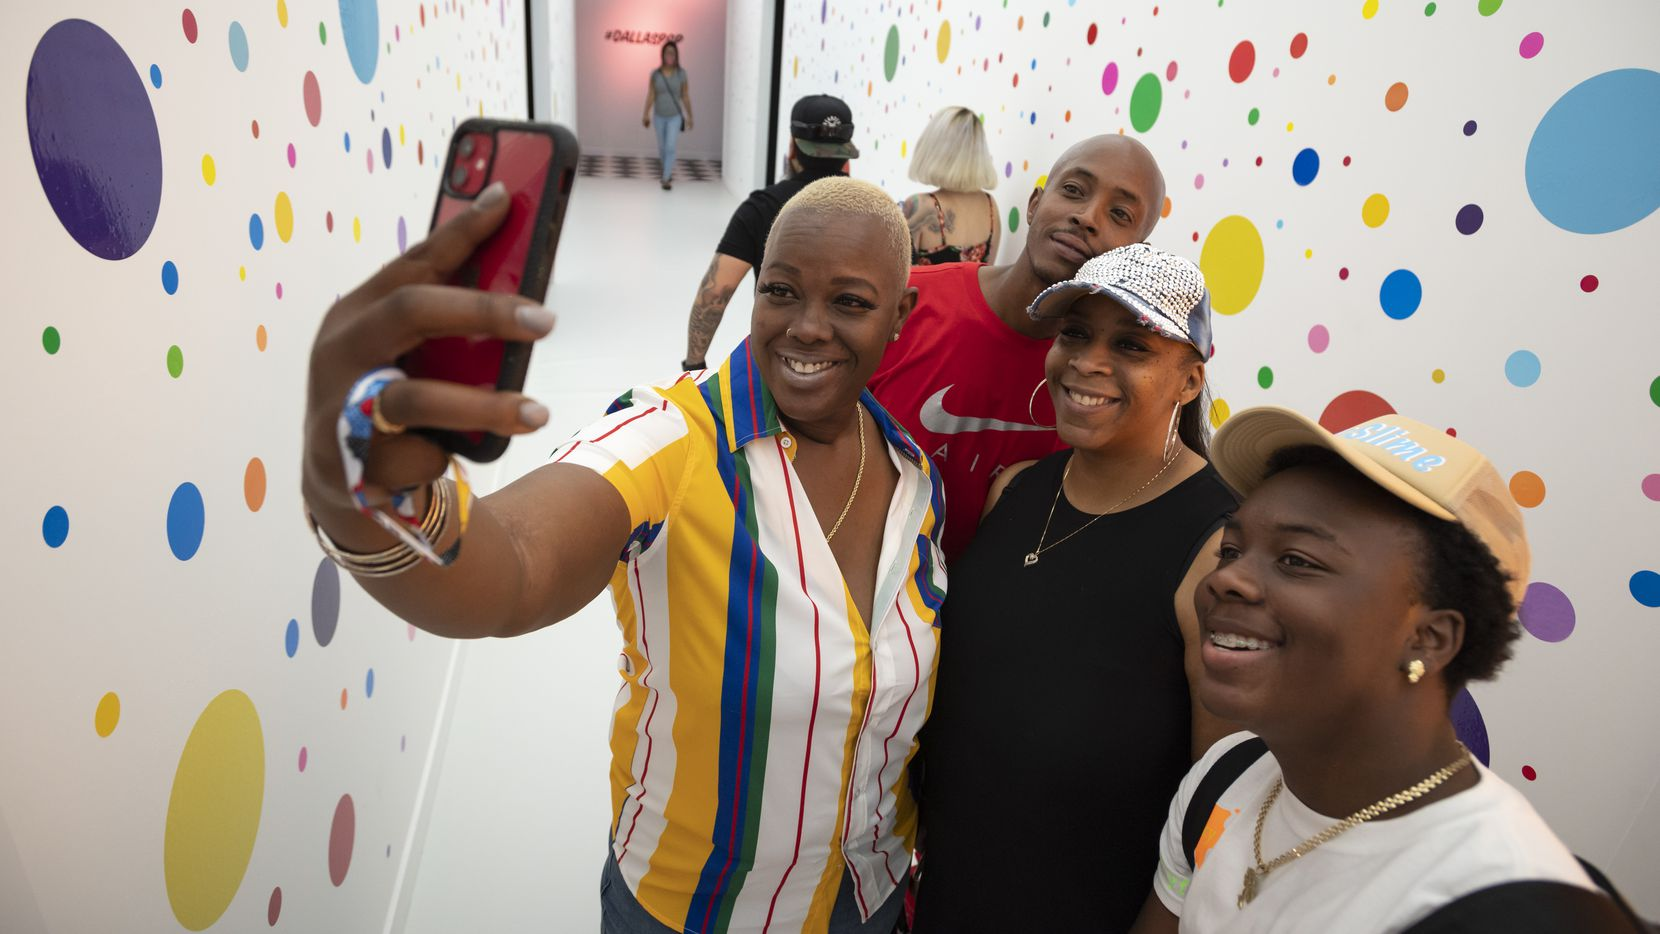 Yolanda Miller snaps a selfie with Tyvone Barnes (in red), Tanika Myricks (second from right) and Rain Johnson (right) in a hallway of the multiroom Pop! by Snowday.